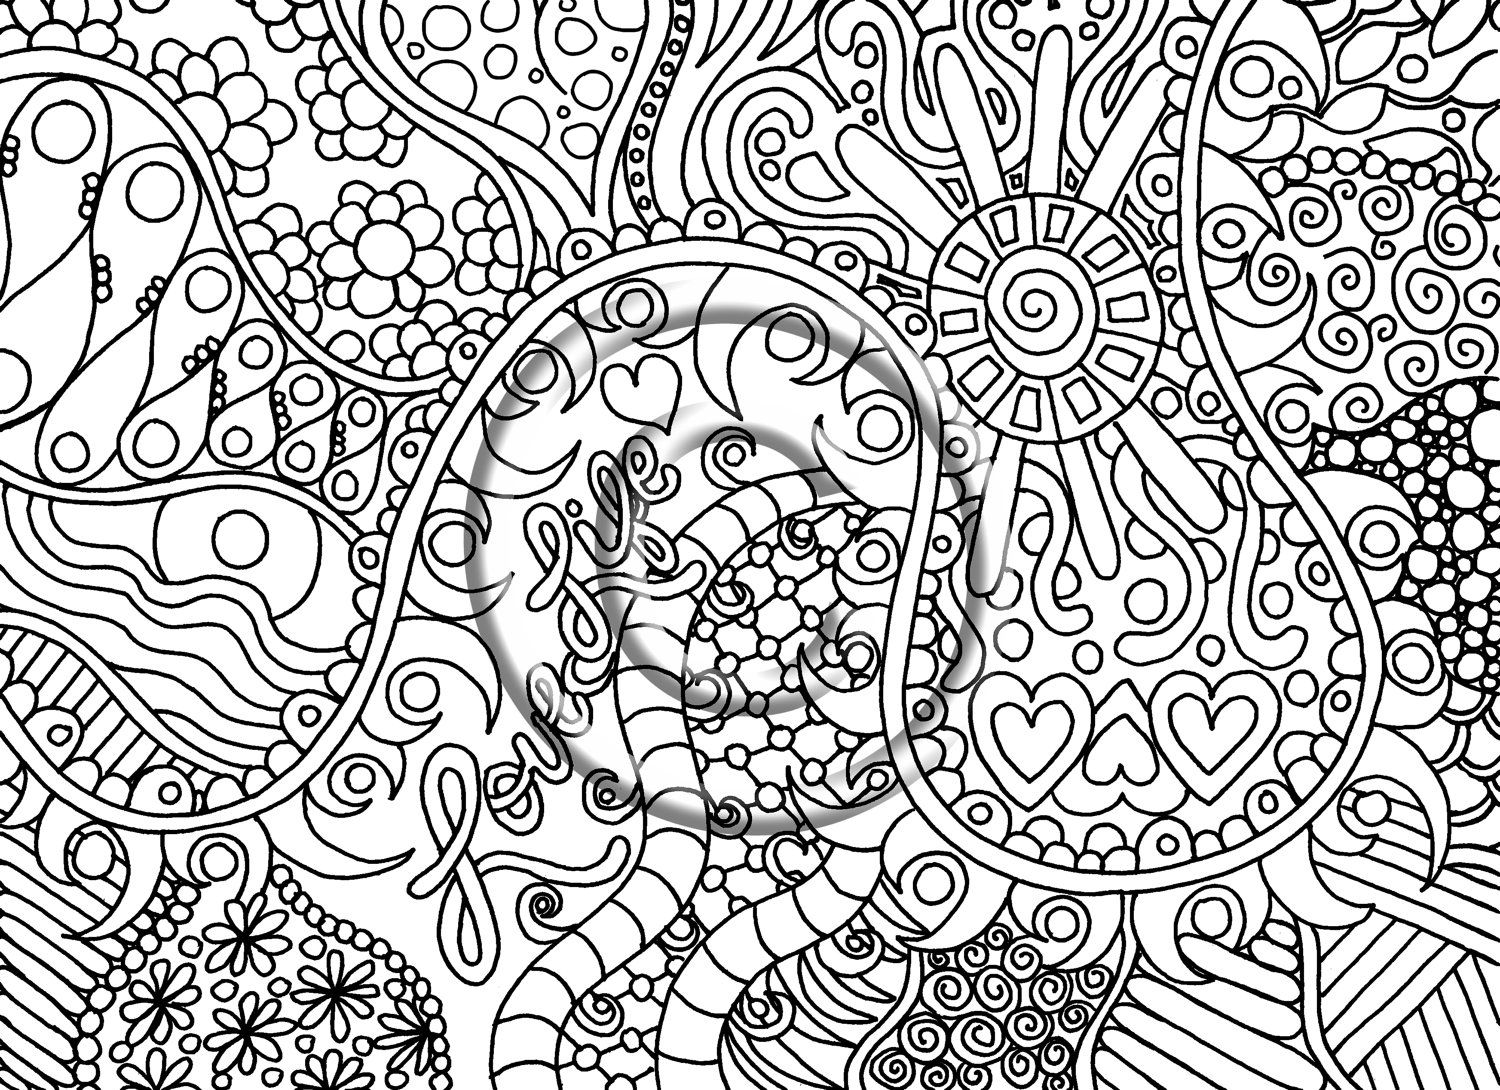 Printable download coloring page, hand drawn zentangle inspired Zendoodle Abstract Coloring Pages zendoodle coloring book pages Dragonfly Zendoodle Coloring Page